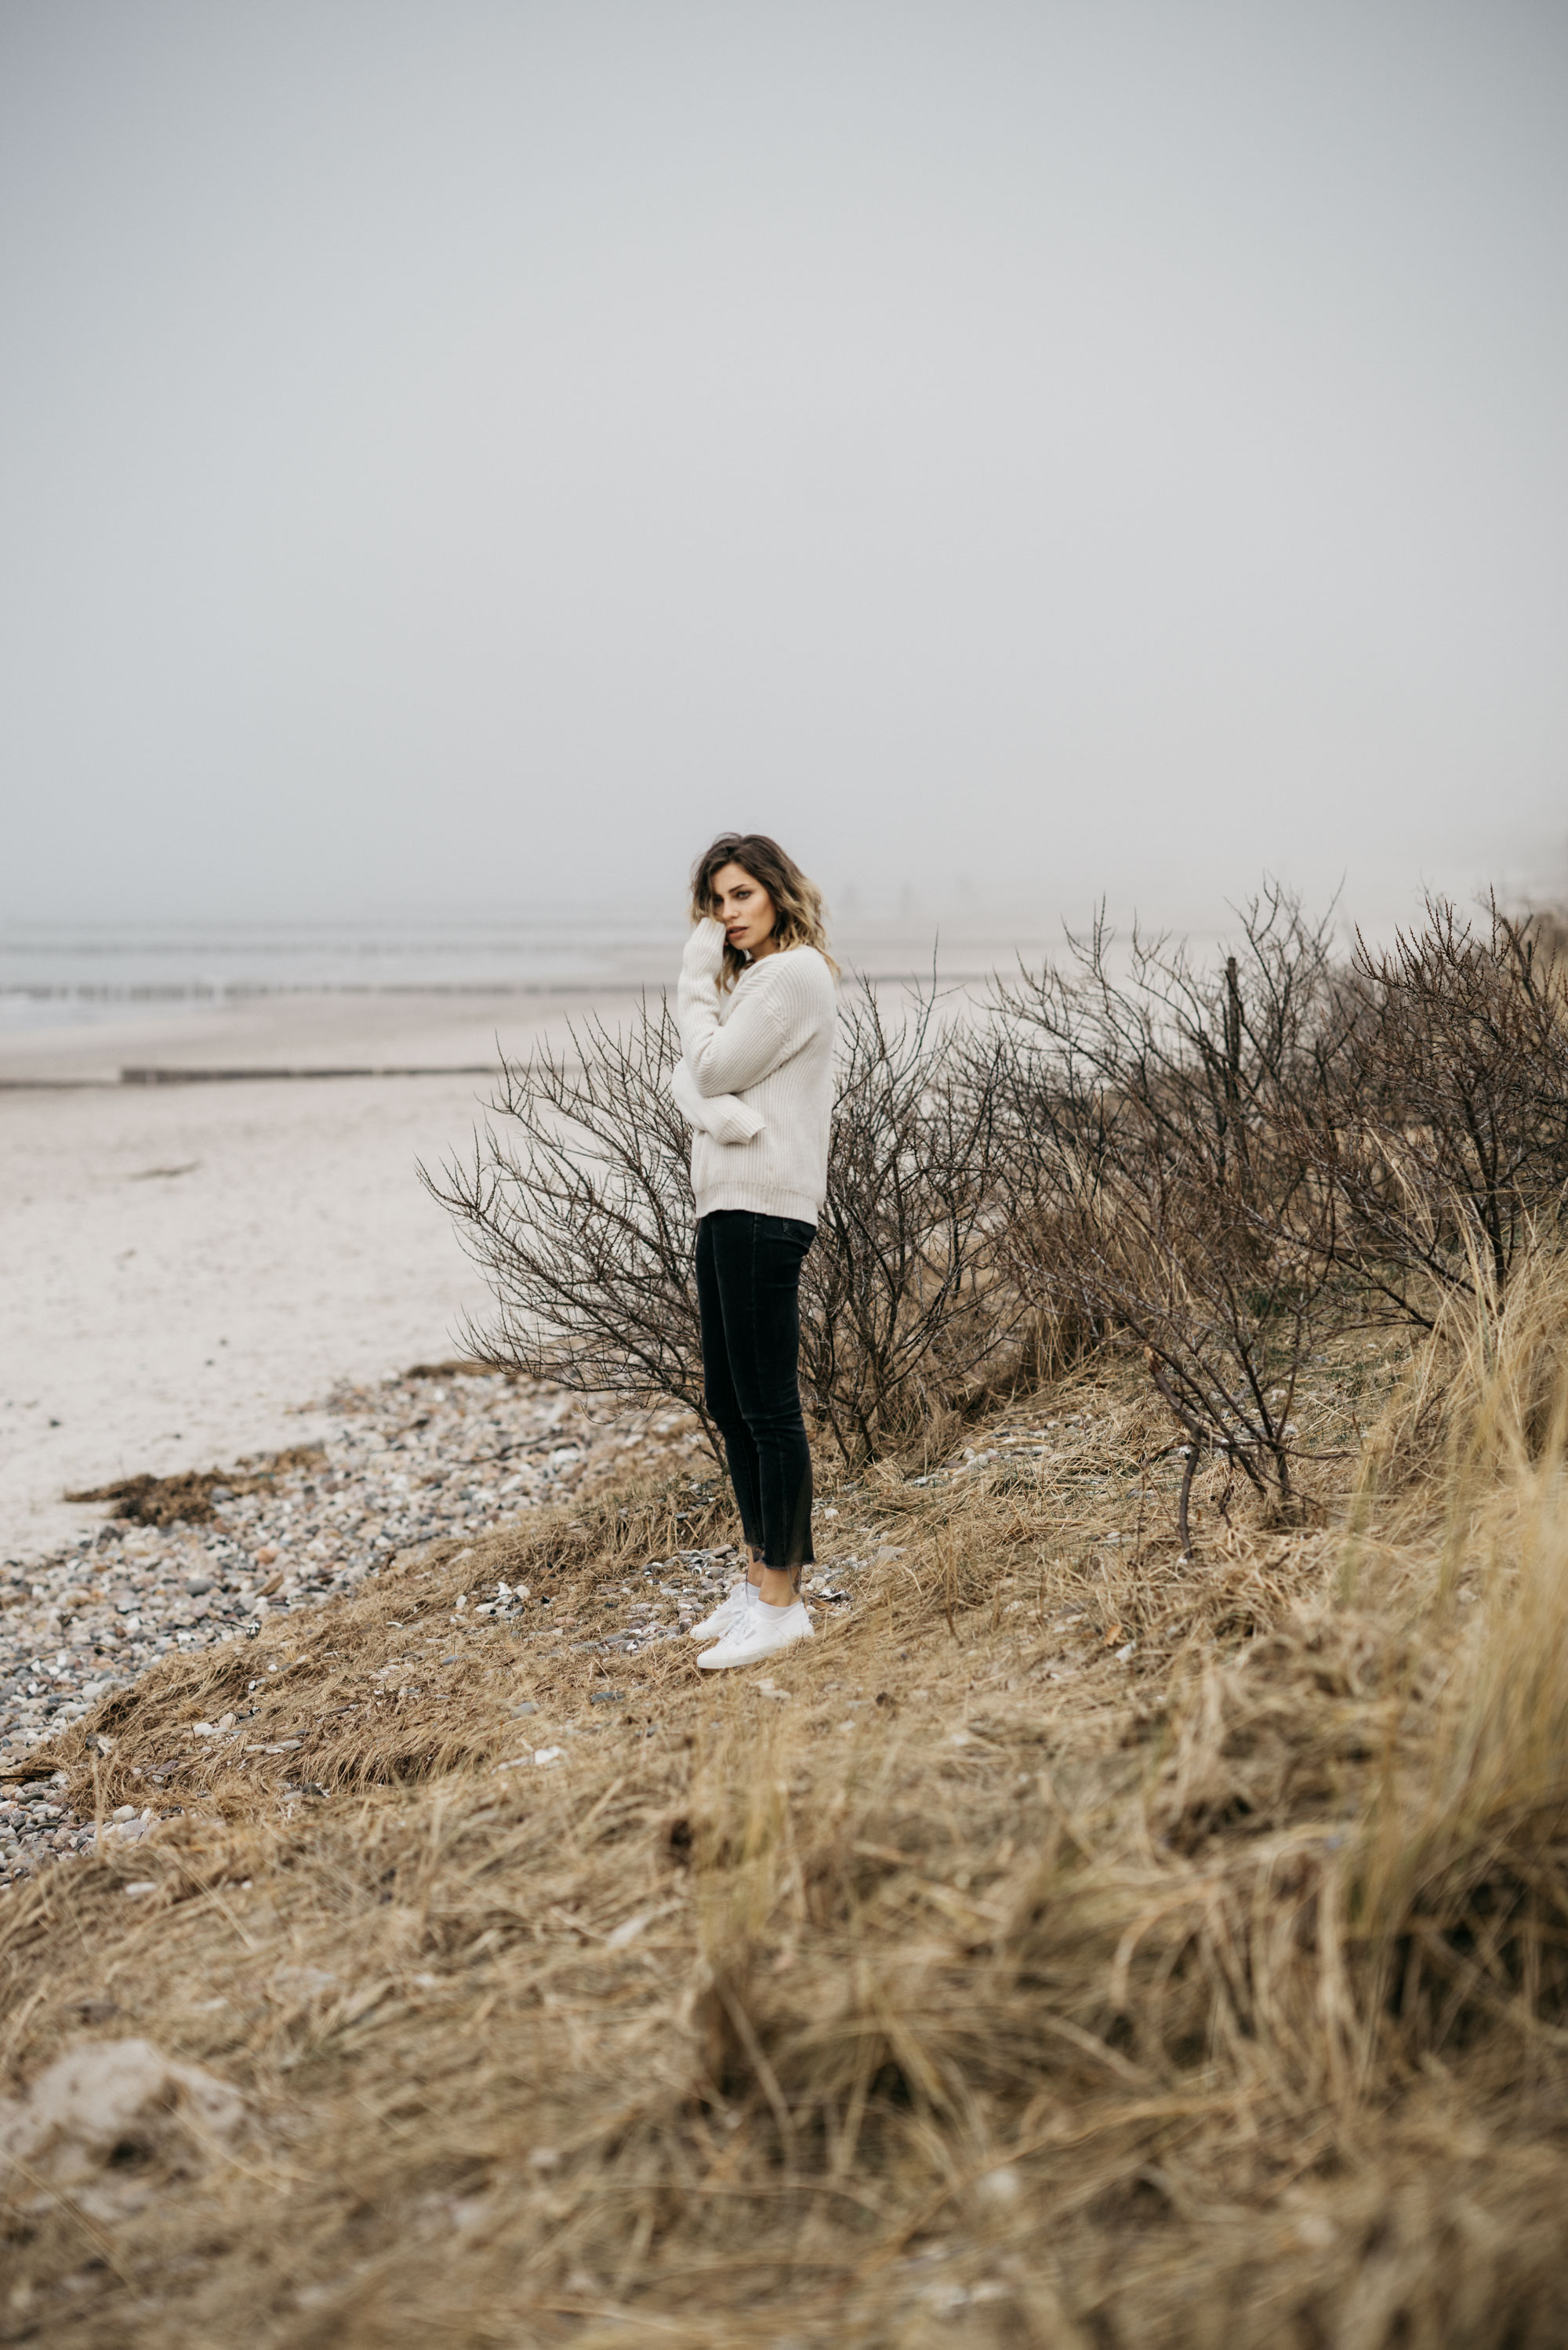 Baltic Sea | Fashion editorial mood | style: emotional, sad, stormy, ocean